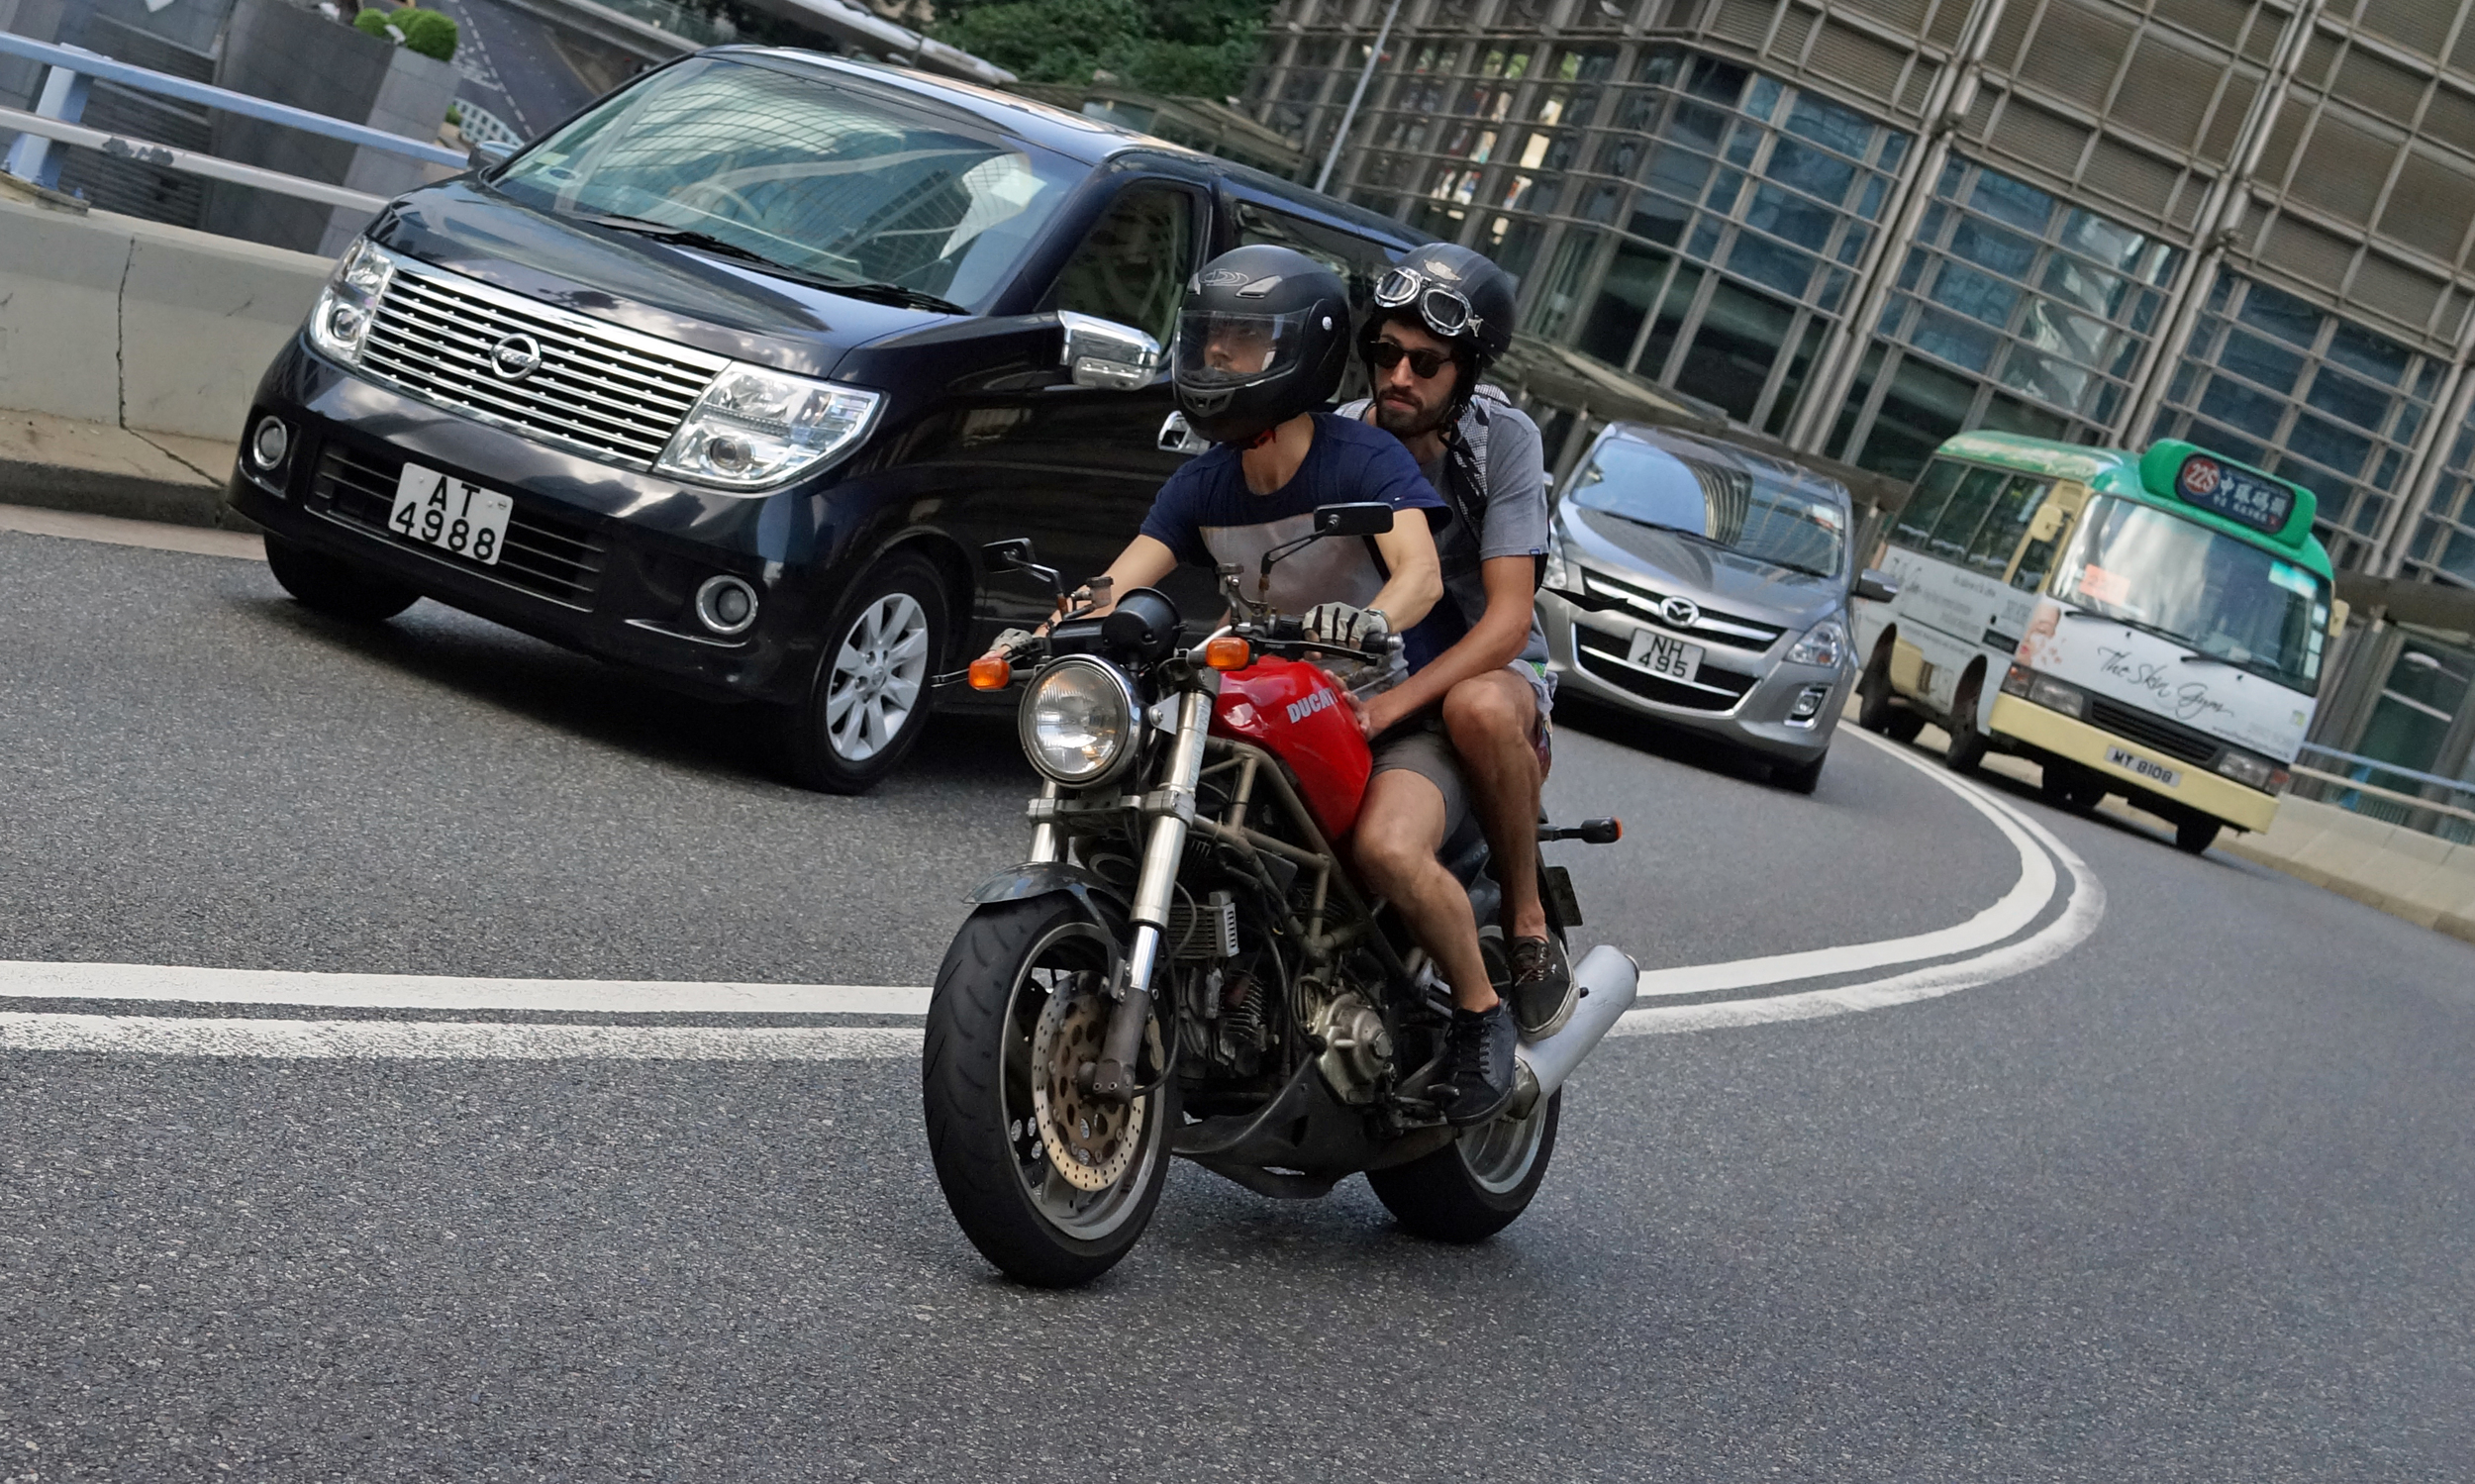 A more explosive means of transport - the Ducati motorbike, probably the best selling superbike in Hong Kong.